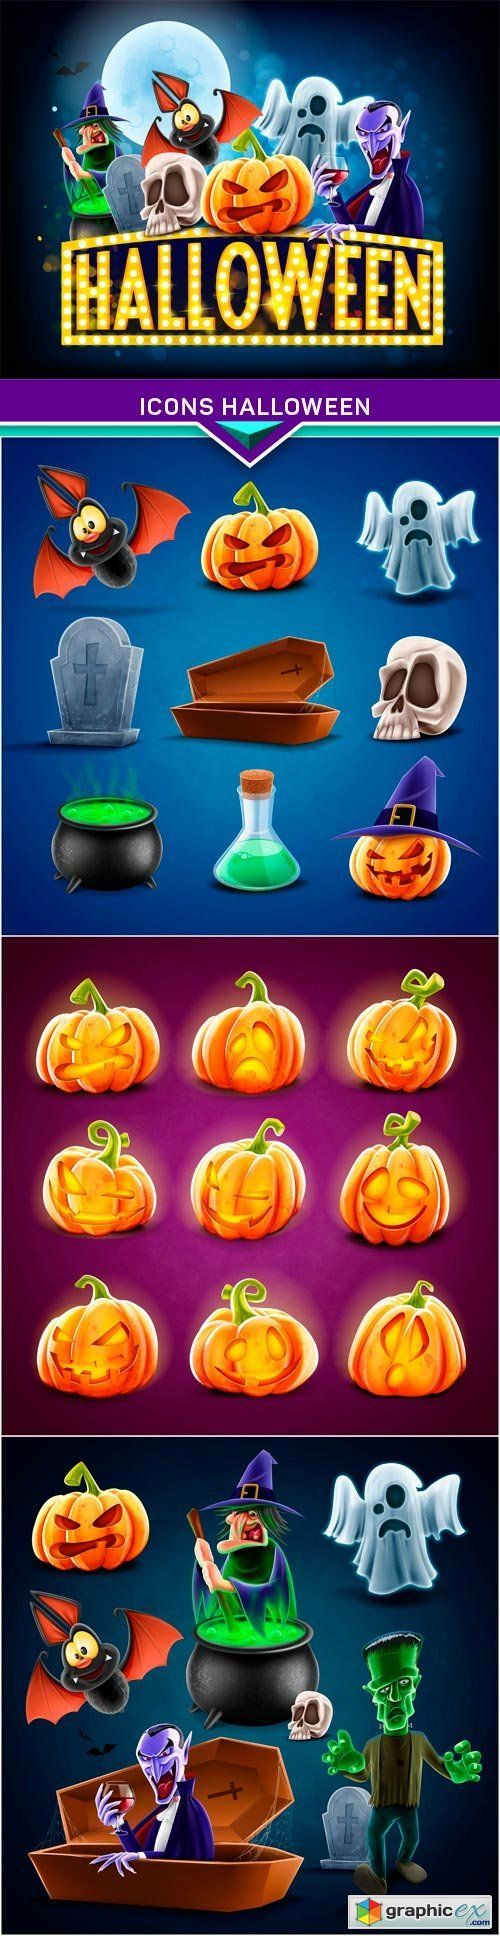 Icons halloween 4X EPS  stock images